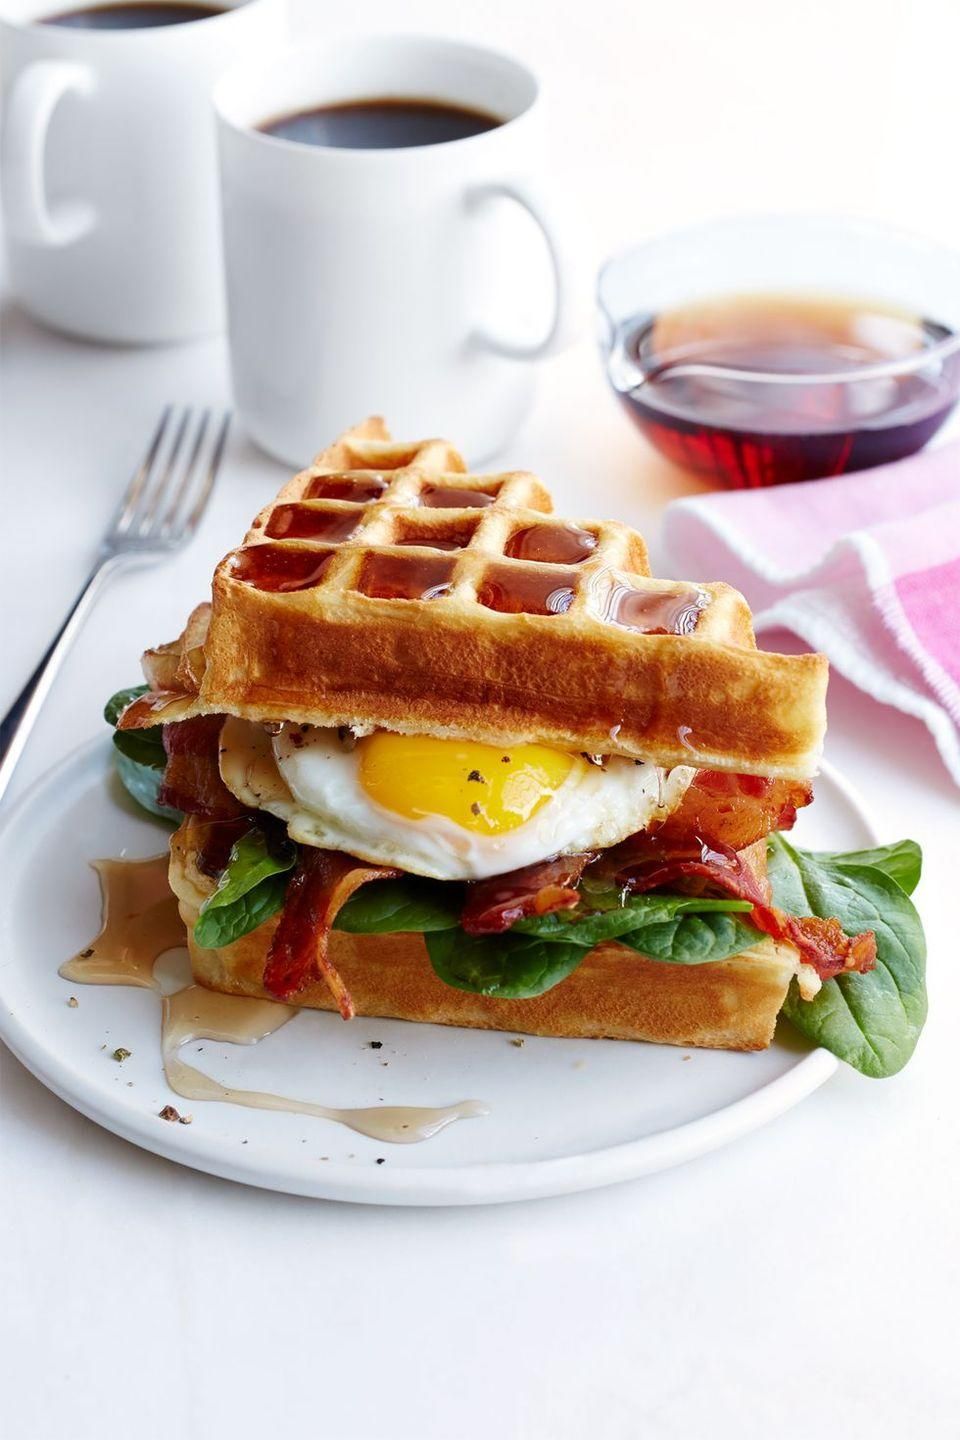 "<p>Sweet-savory fans, unite! This knockout brunch combines waffles with eggs and bacon and a generous drizzle of maple syrup.</p><p><em><a href=""https://www.womansday.com/food-recipes/recipes/a50558/buttermilk-waffle-bacon-egg-sandwich-recipe-wdy0615/"" rel=""nofollow noopener"" target=""_blank"" data-ylk=""slk:Get the recipe from Woman's Day »"" class=""link rapid-noclick-resp"">Get the recipe from Woman's Day »</a></em></p>"